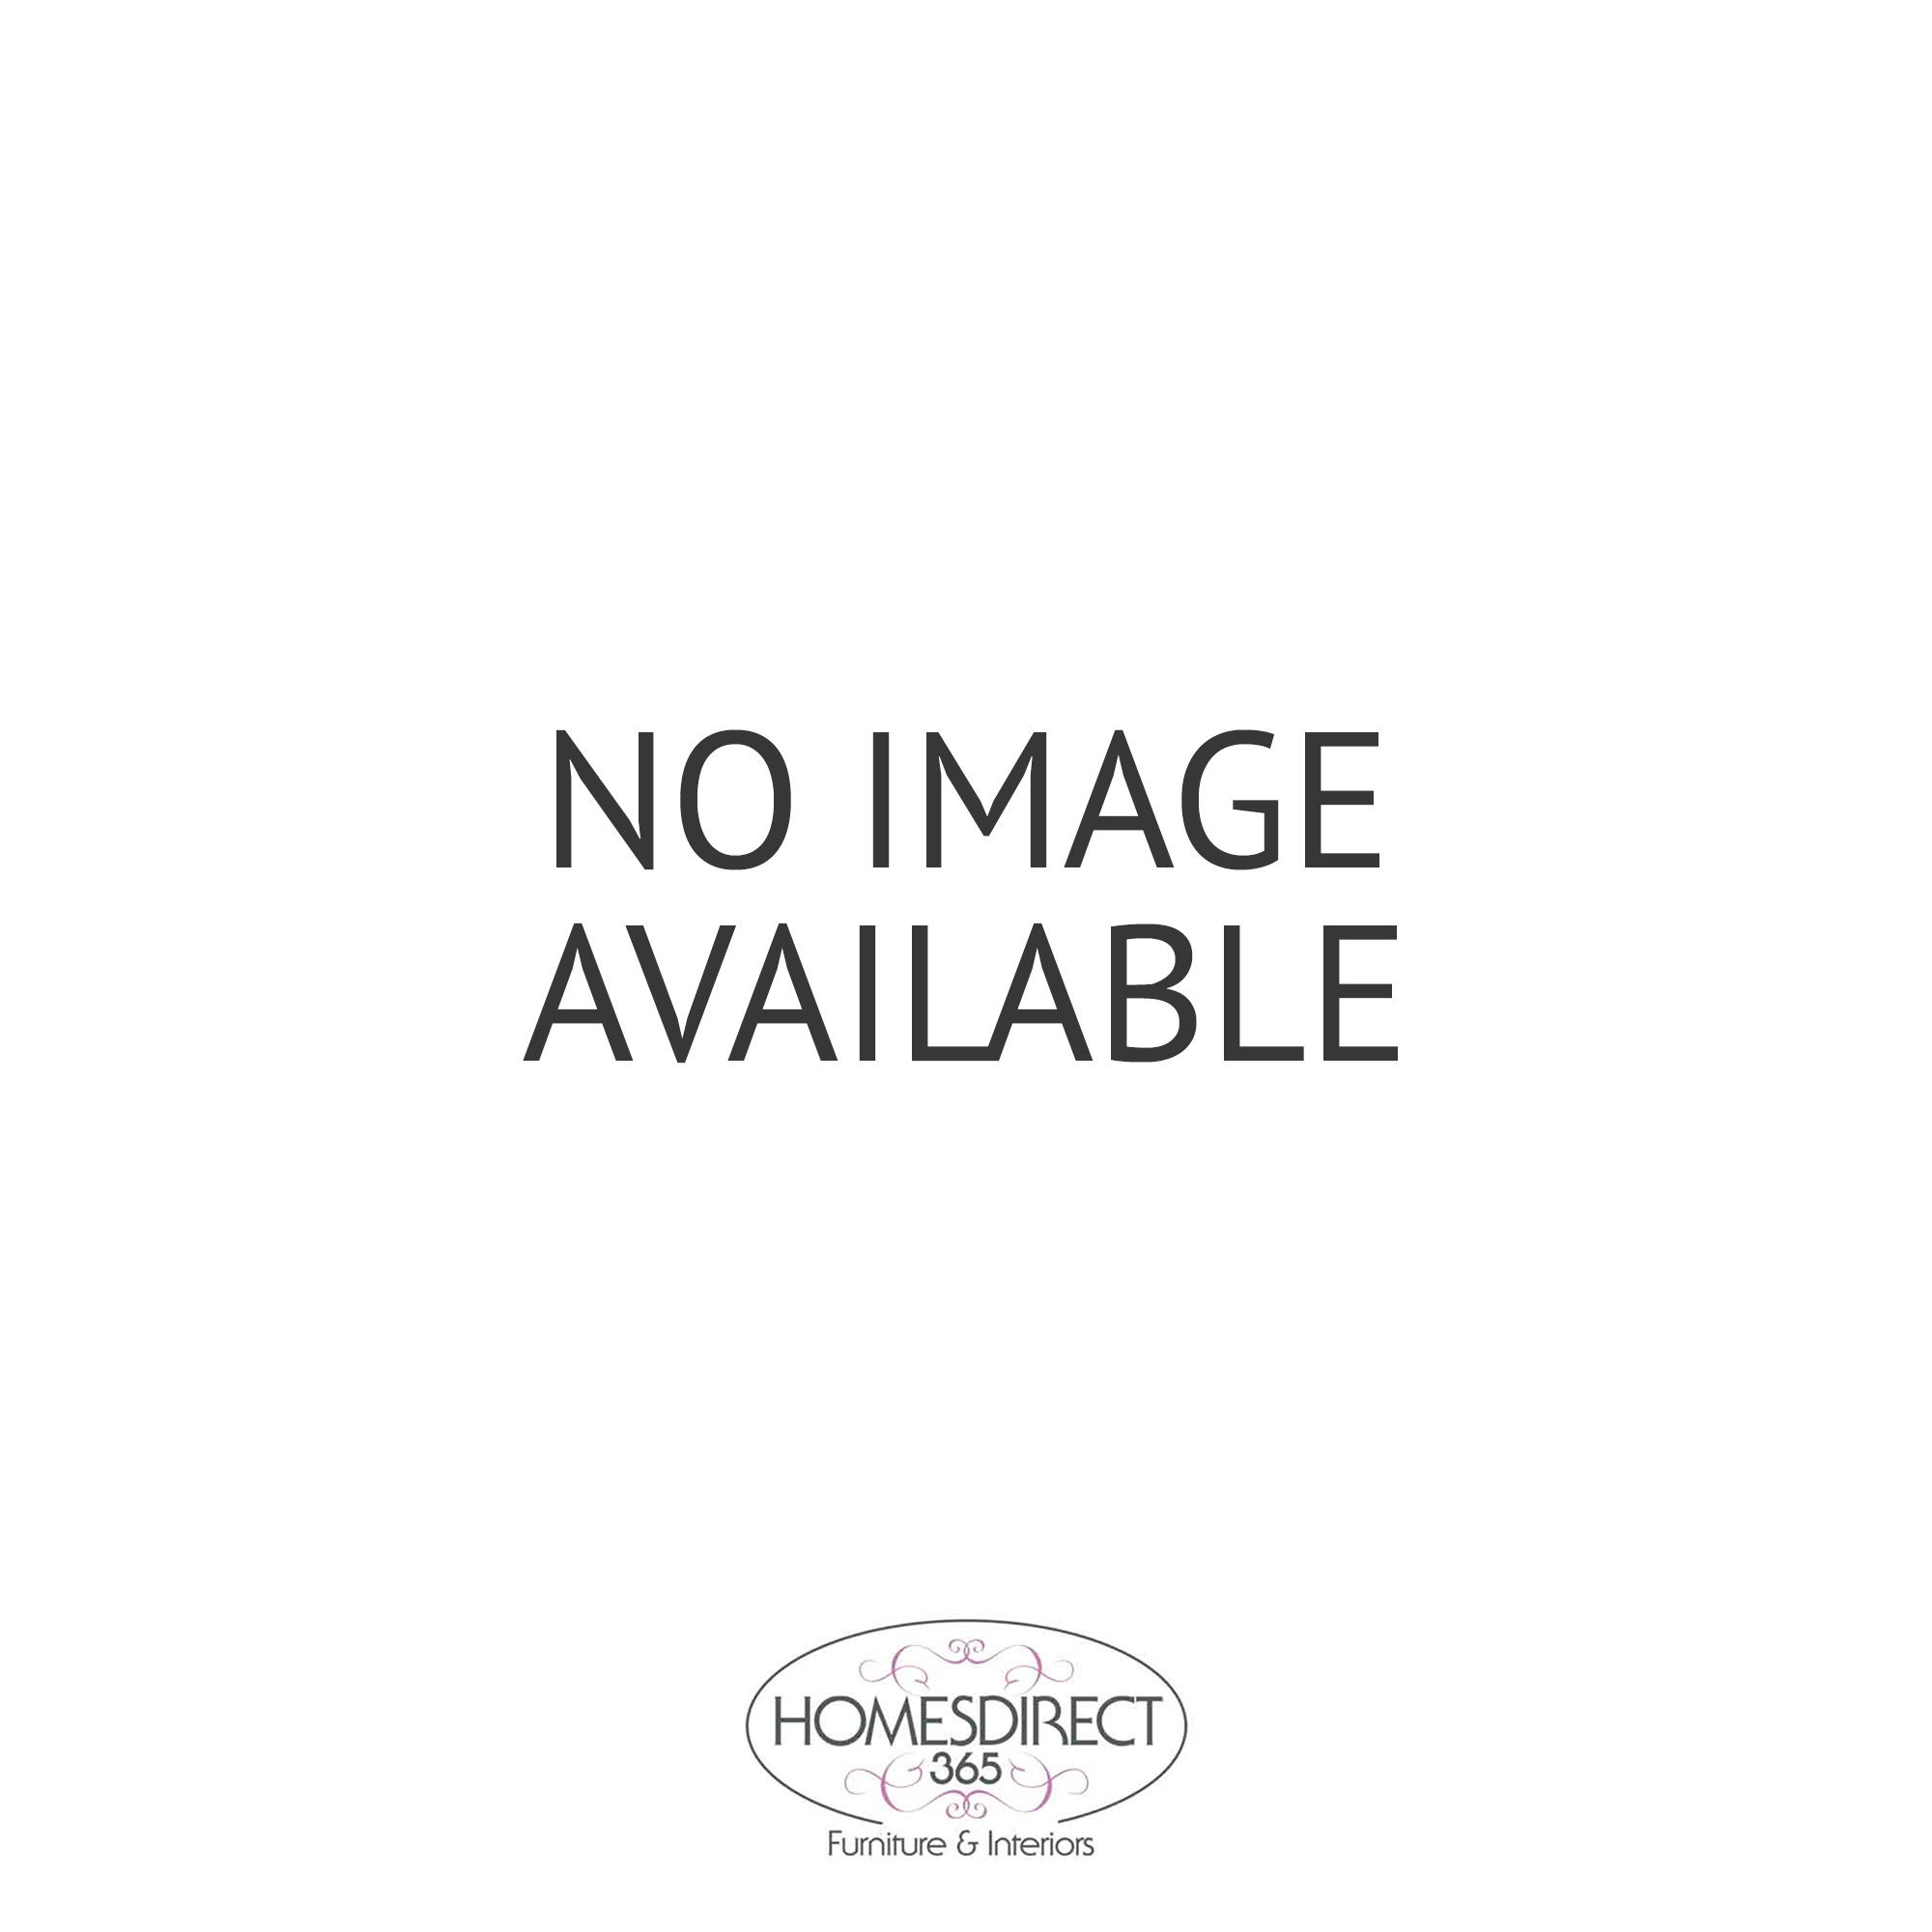 Live Edge James Martin Style Chopping Board